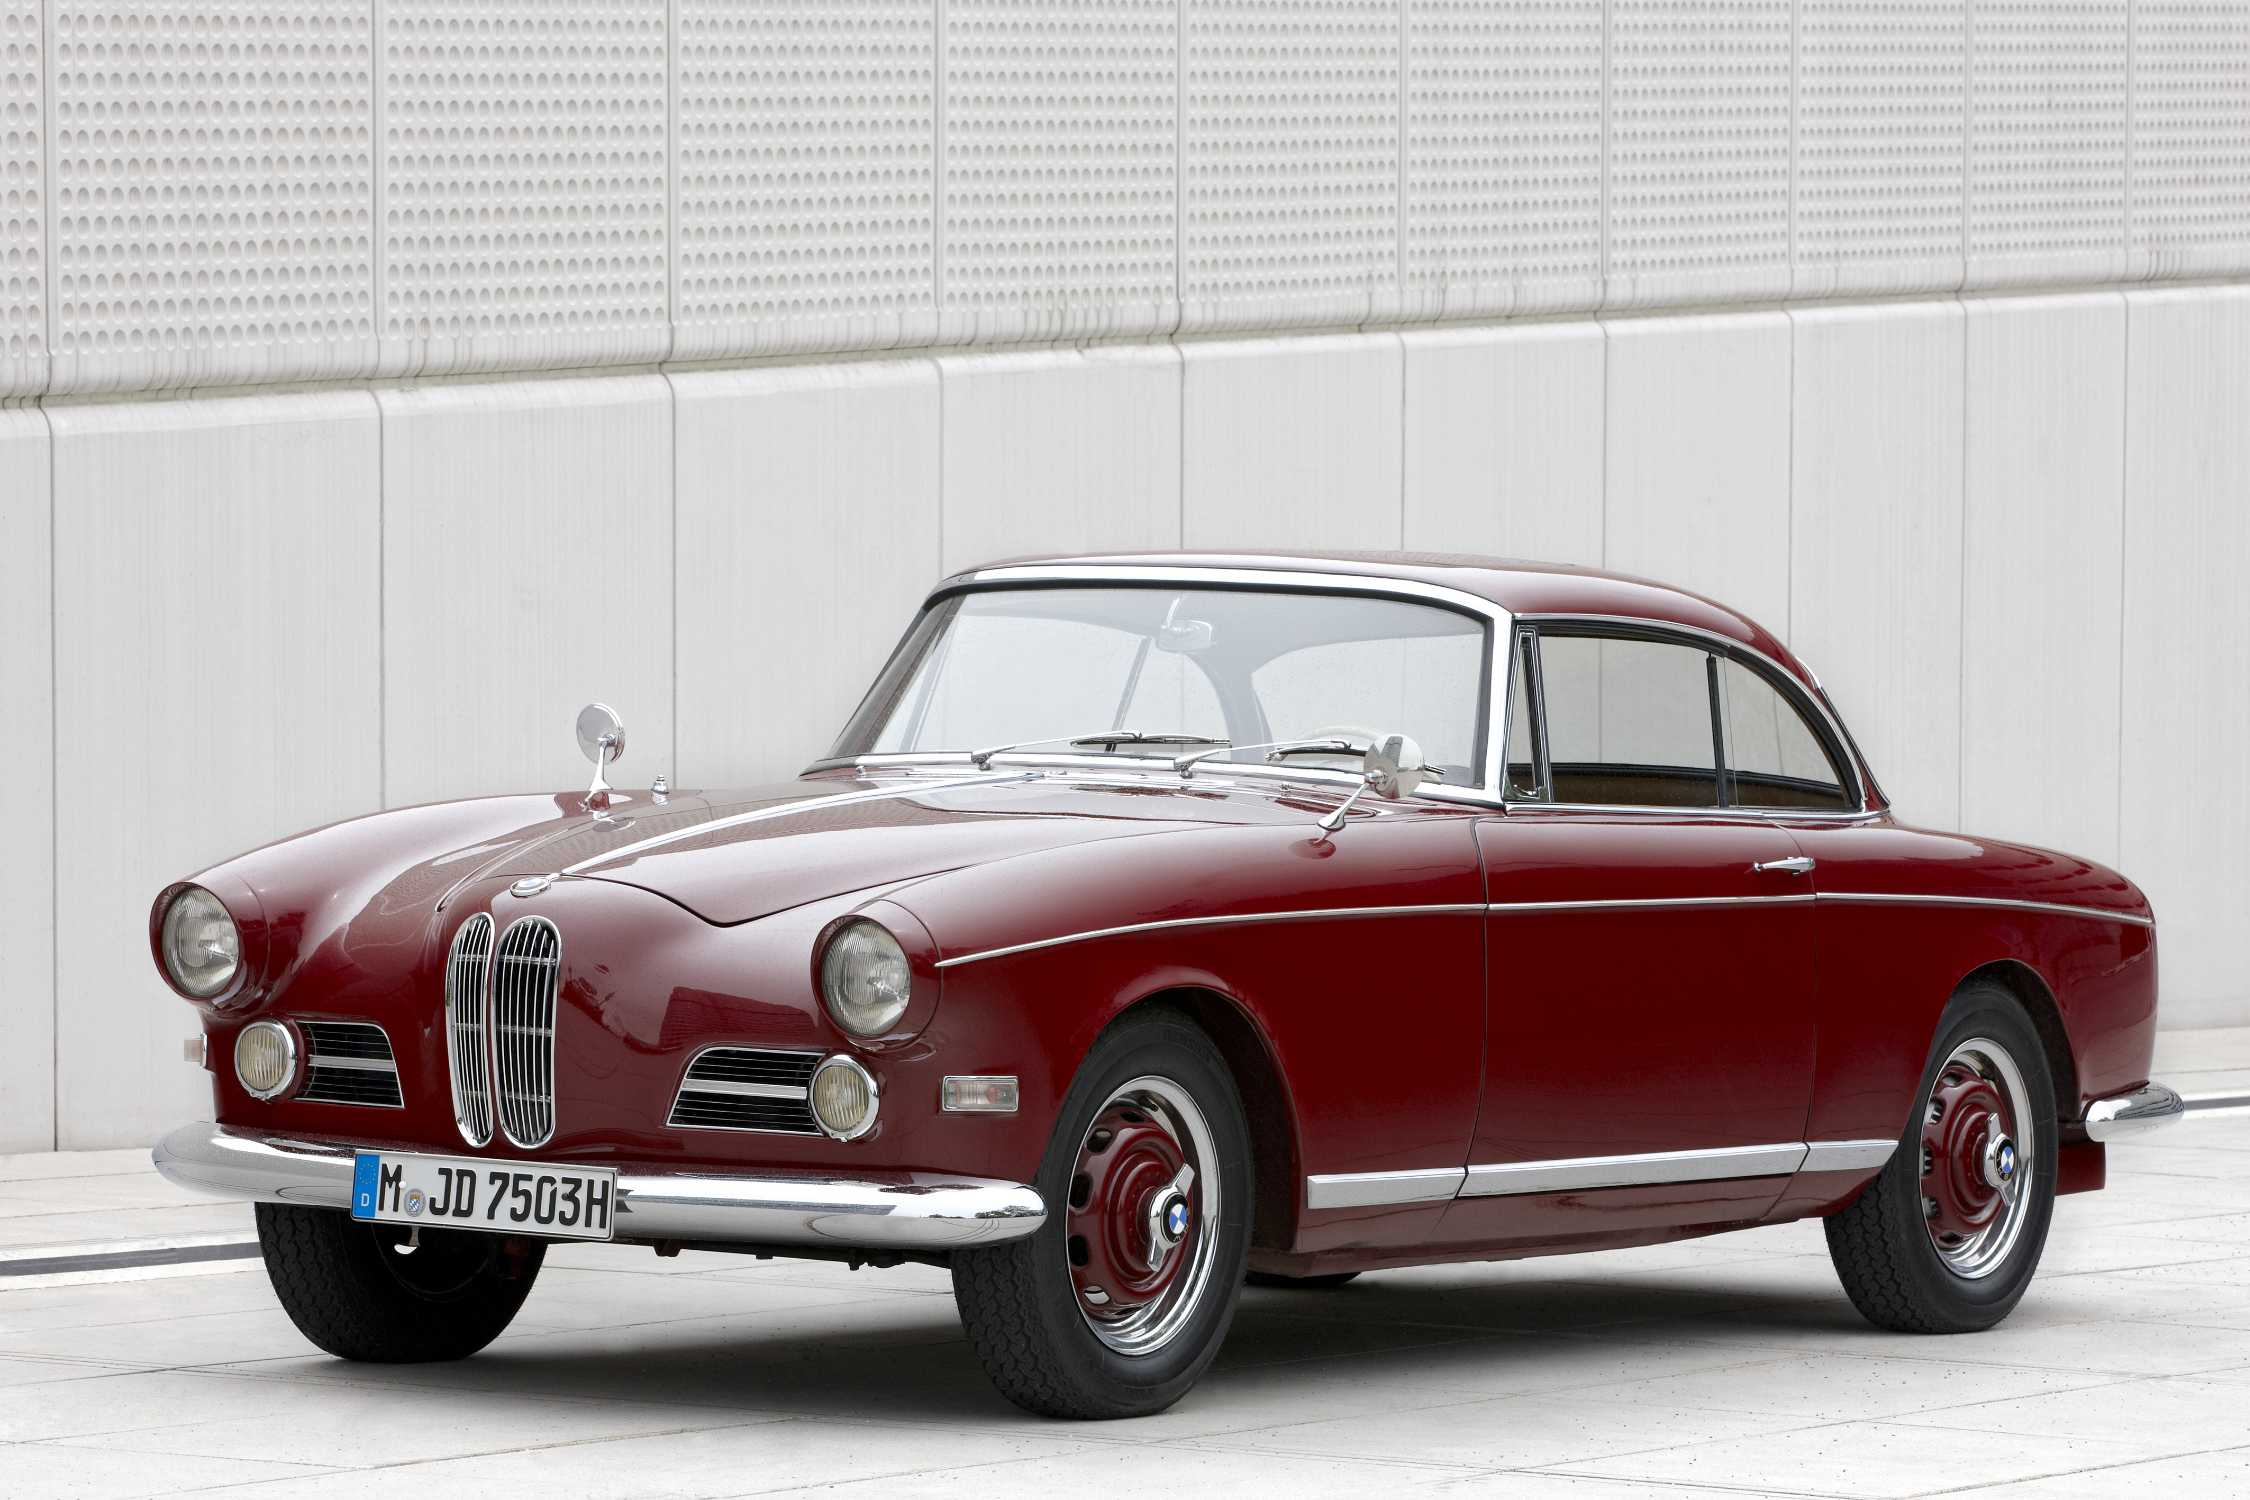 The BMW 503 Coupe Sport, year of manufacture 1959 - Exterior (07/2011).